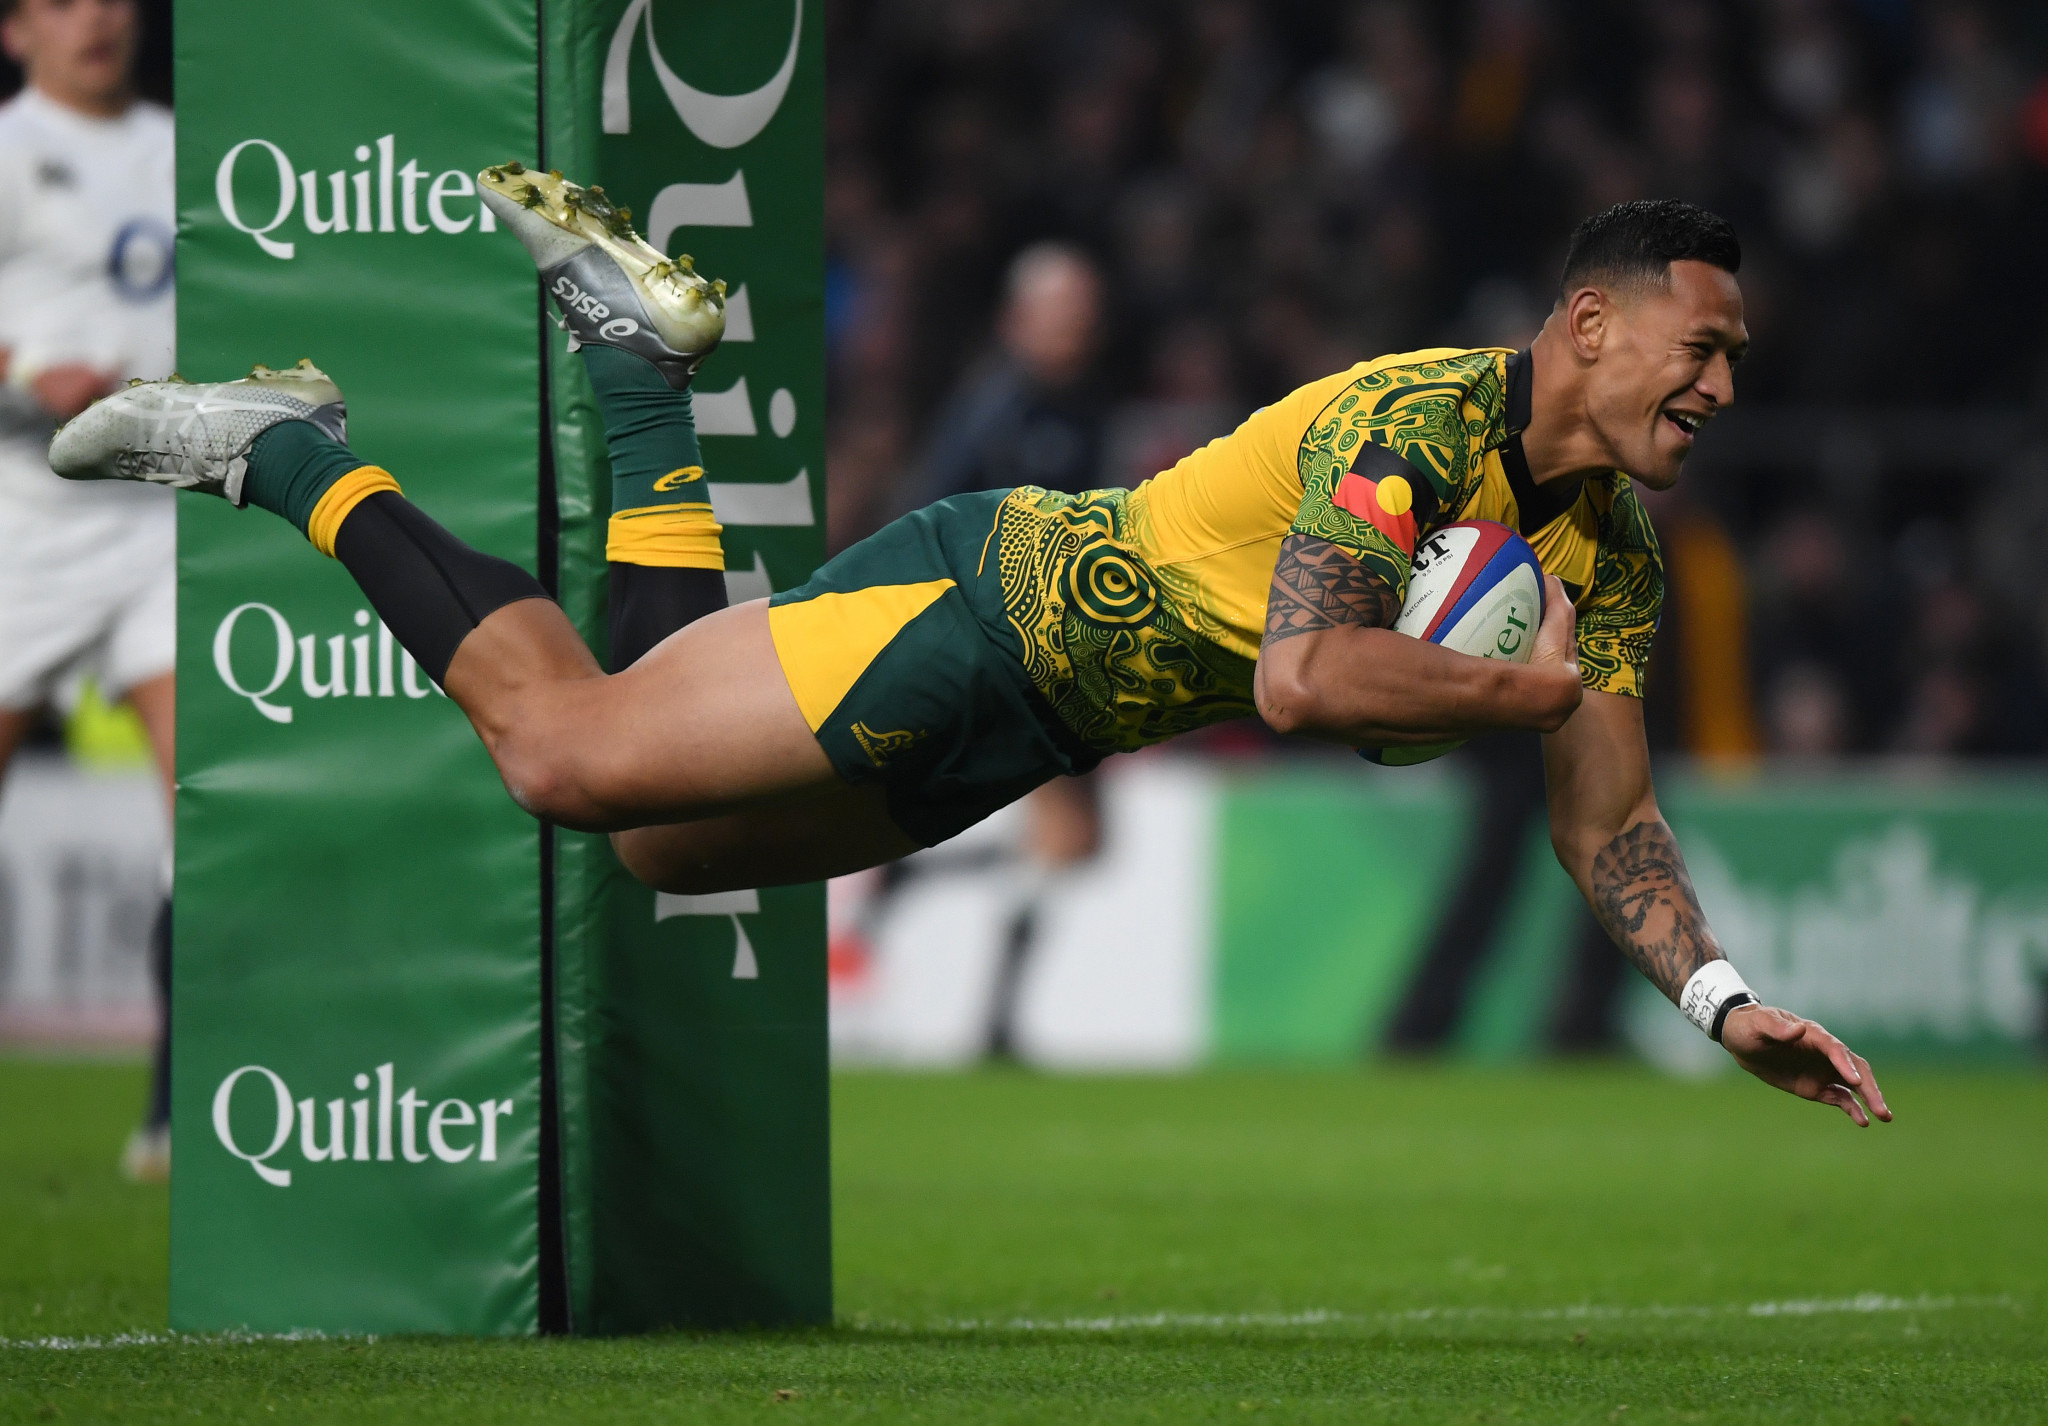 Israel Folau was one of the key players in the Australian rugby union squad before his sacking ©Getty Images